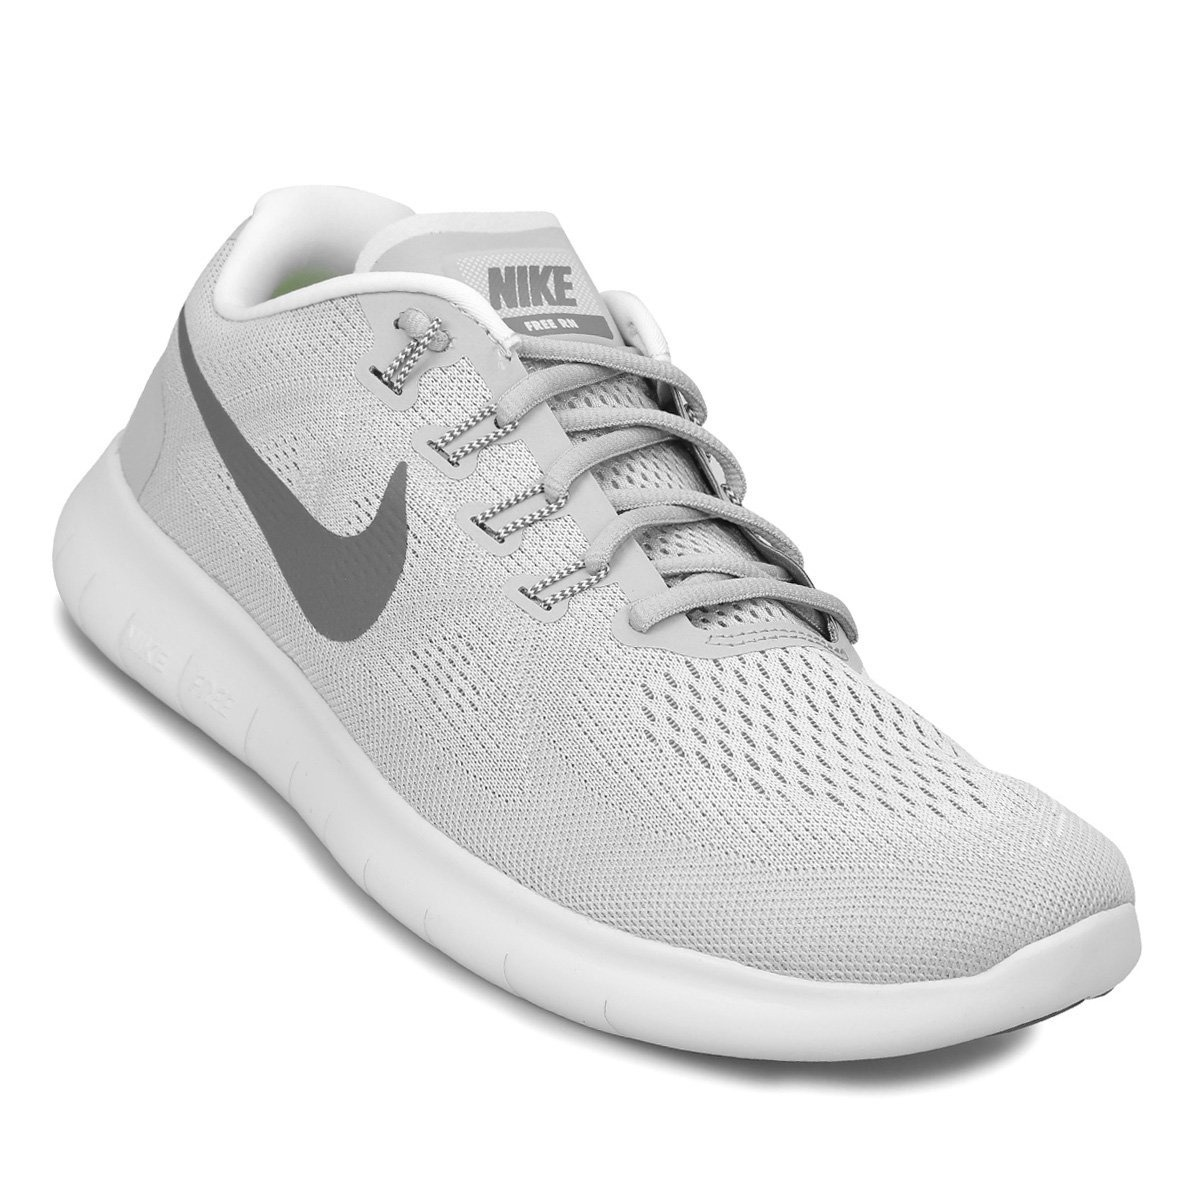 official photos 96289 3cbfa zapatillas nike free rn 2 - gris. Cargando zoom.